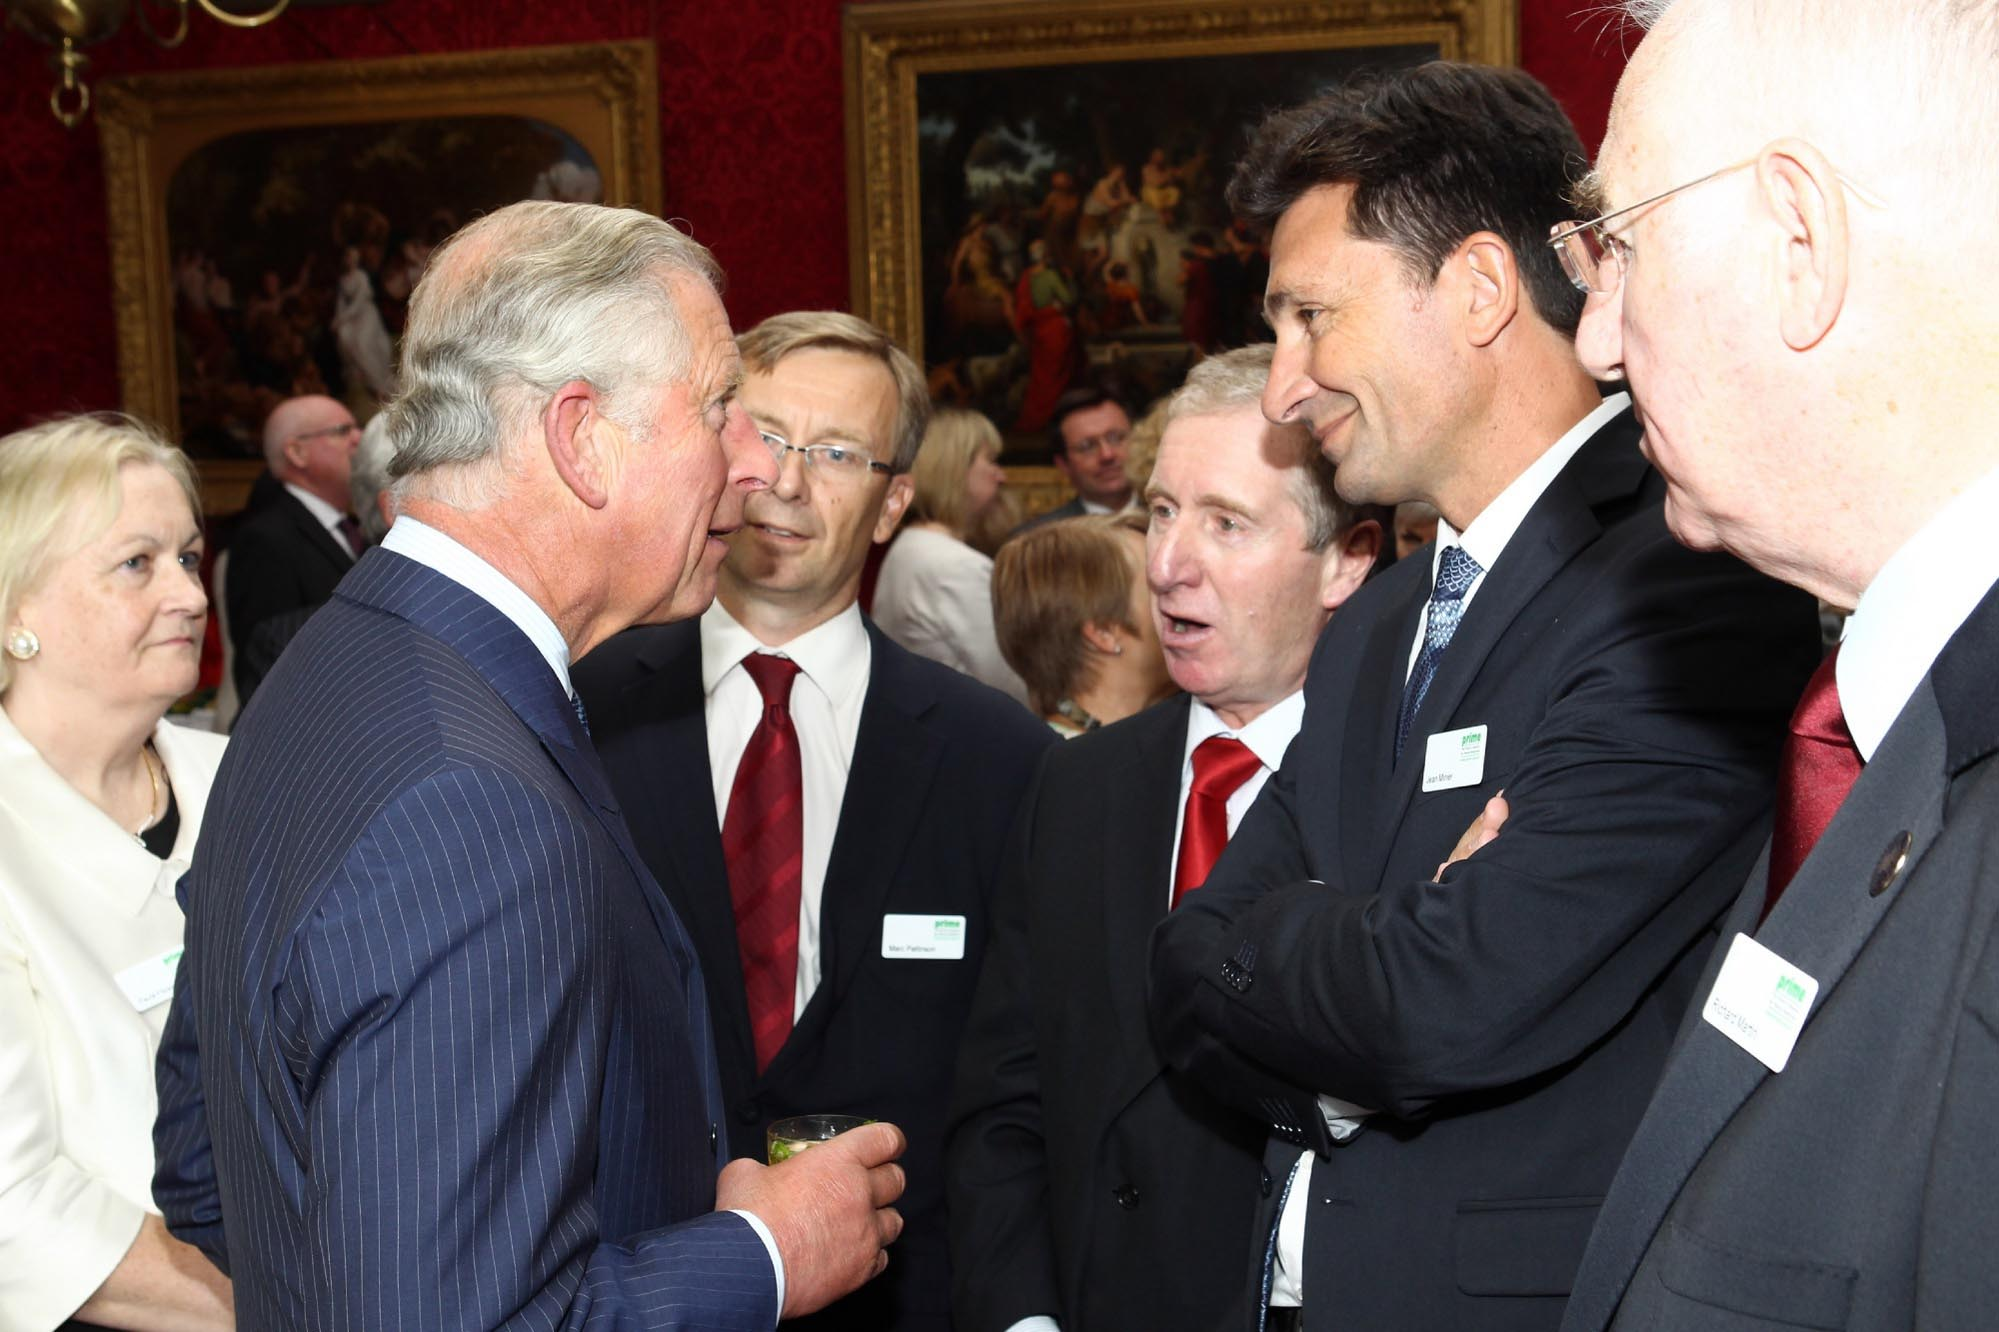 HRH Prince Charles with the Senior Enterprise Partners, St. James Palace, London, September 2013. Senior Enterprise is an INTERREG IV B NWE project. Pictured left to right: Paula Fitzsimons (Project C